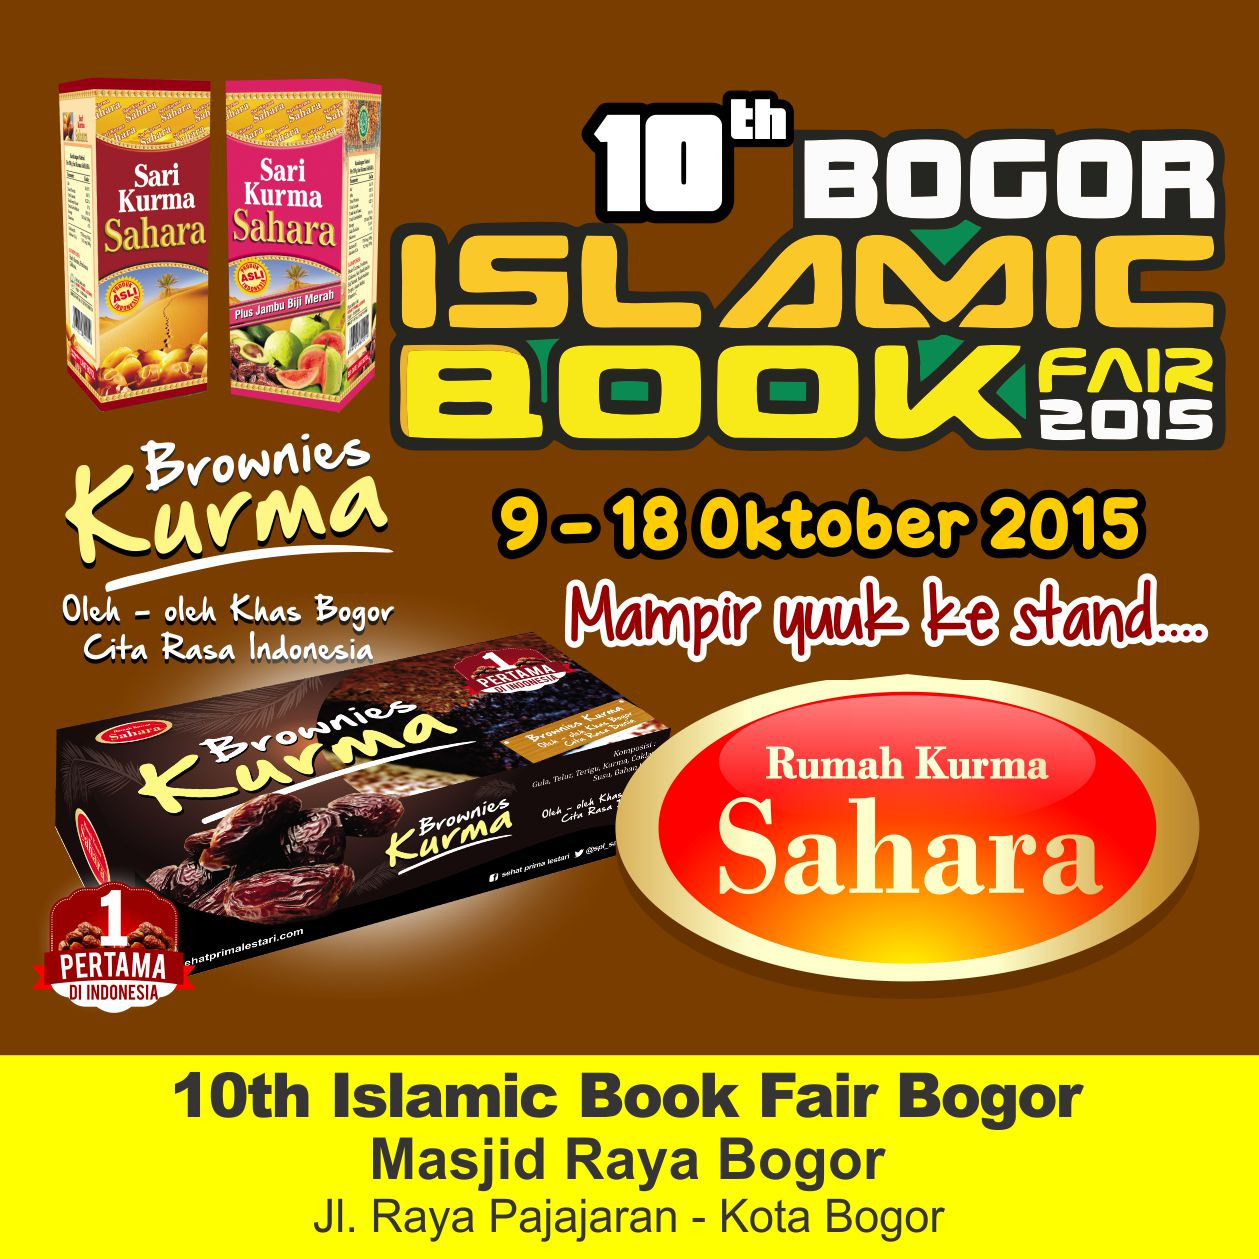 Islamic Book Fair Bogor 10TH 2015